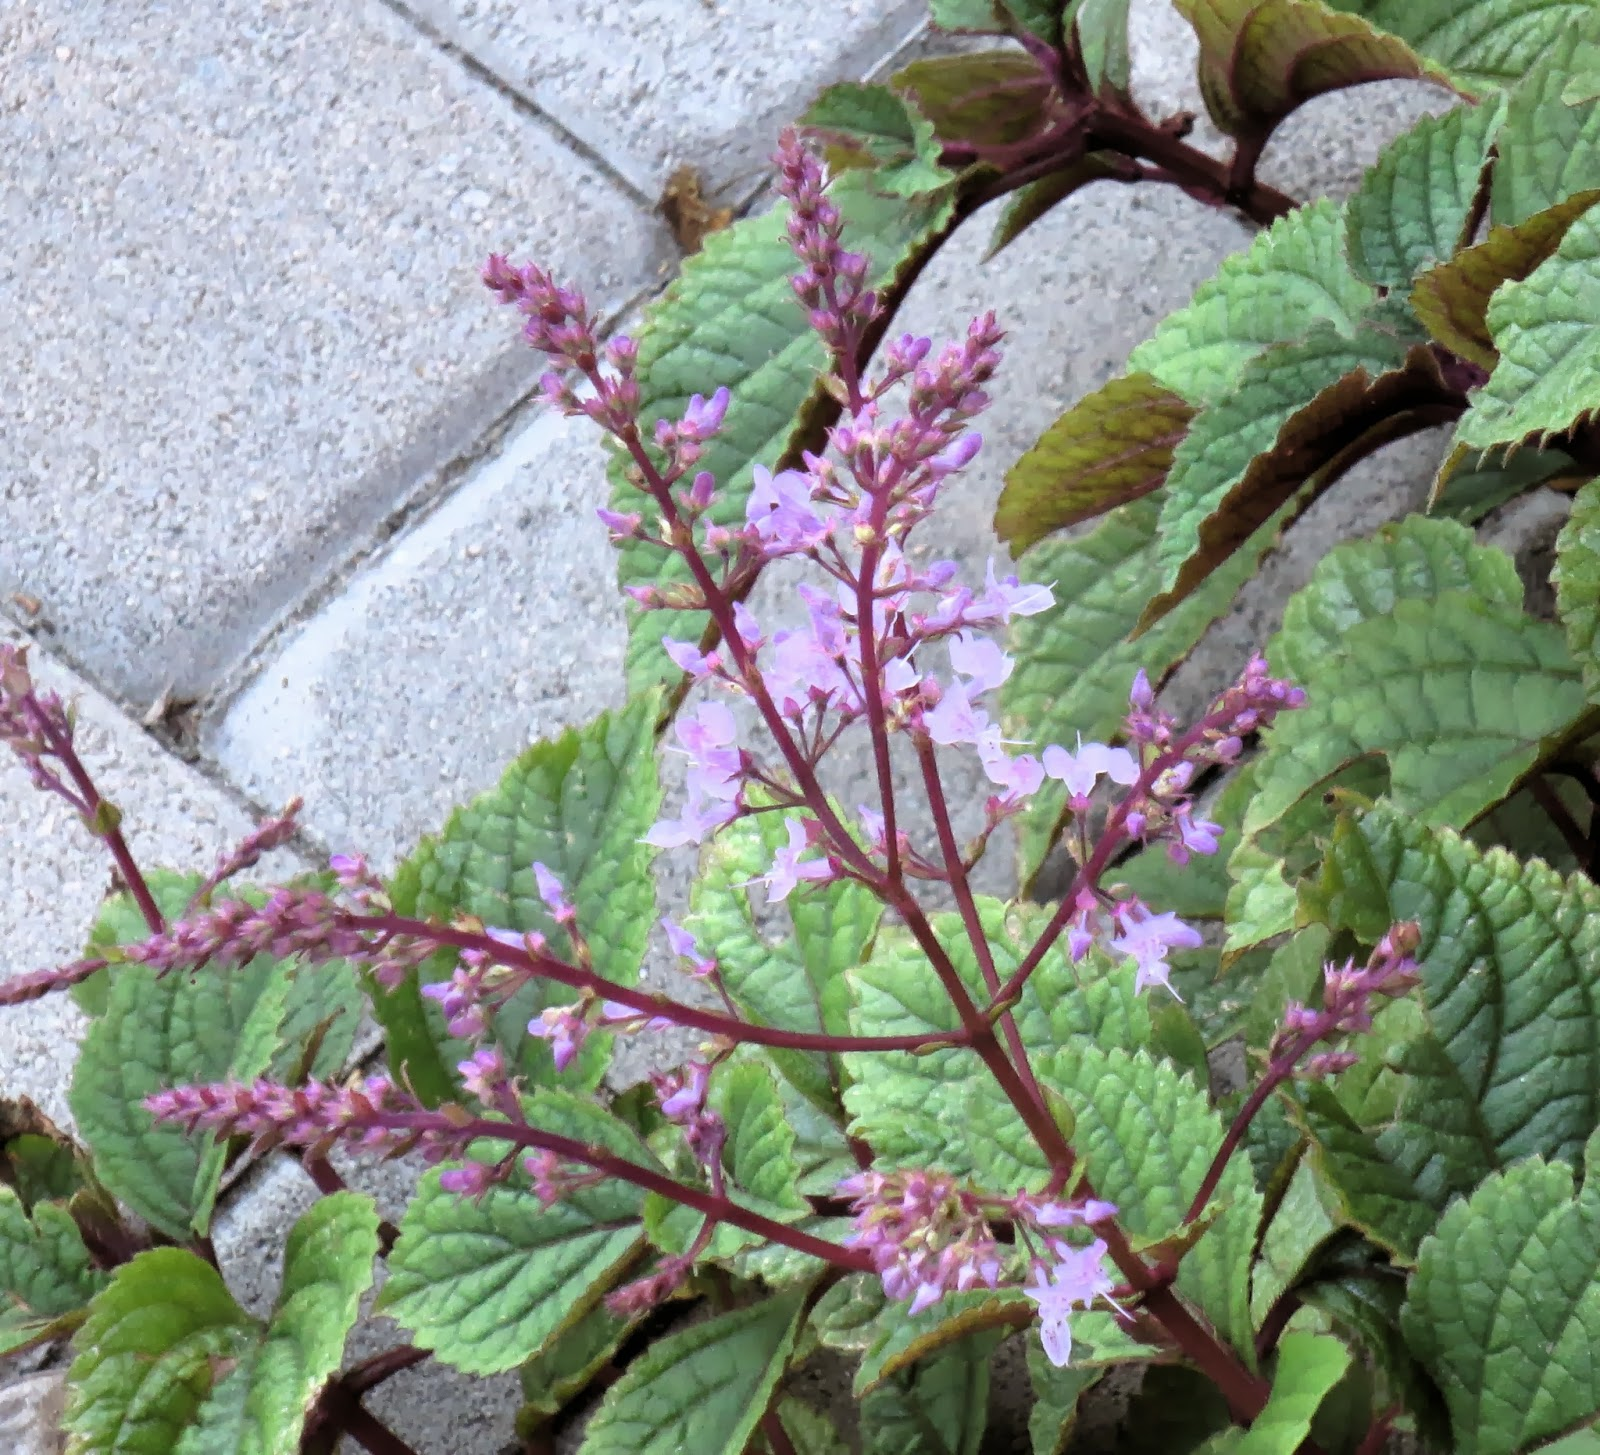 late to the garden party  my favorite plant this week  plectranthus ciliatus  u0026 39 zulu warrior u0026 39